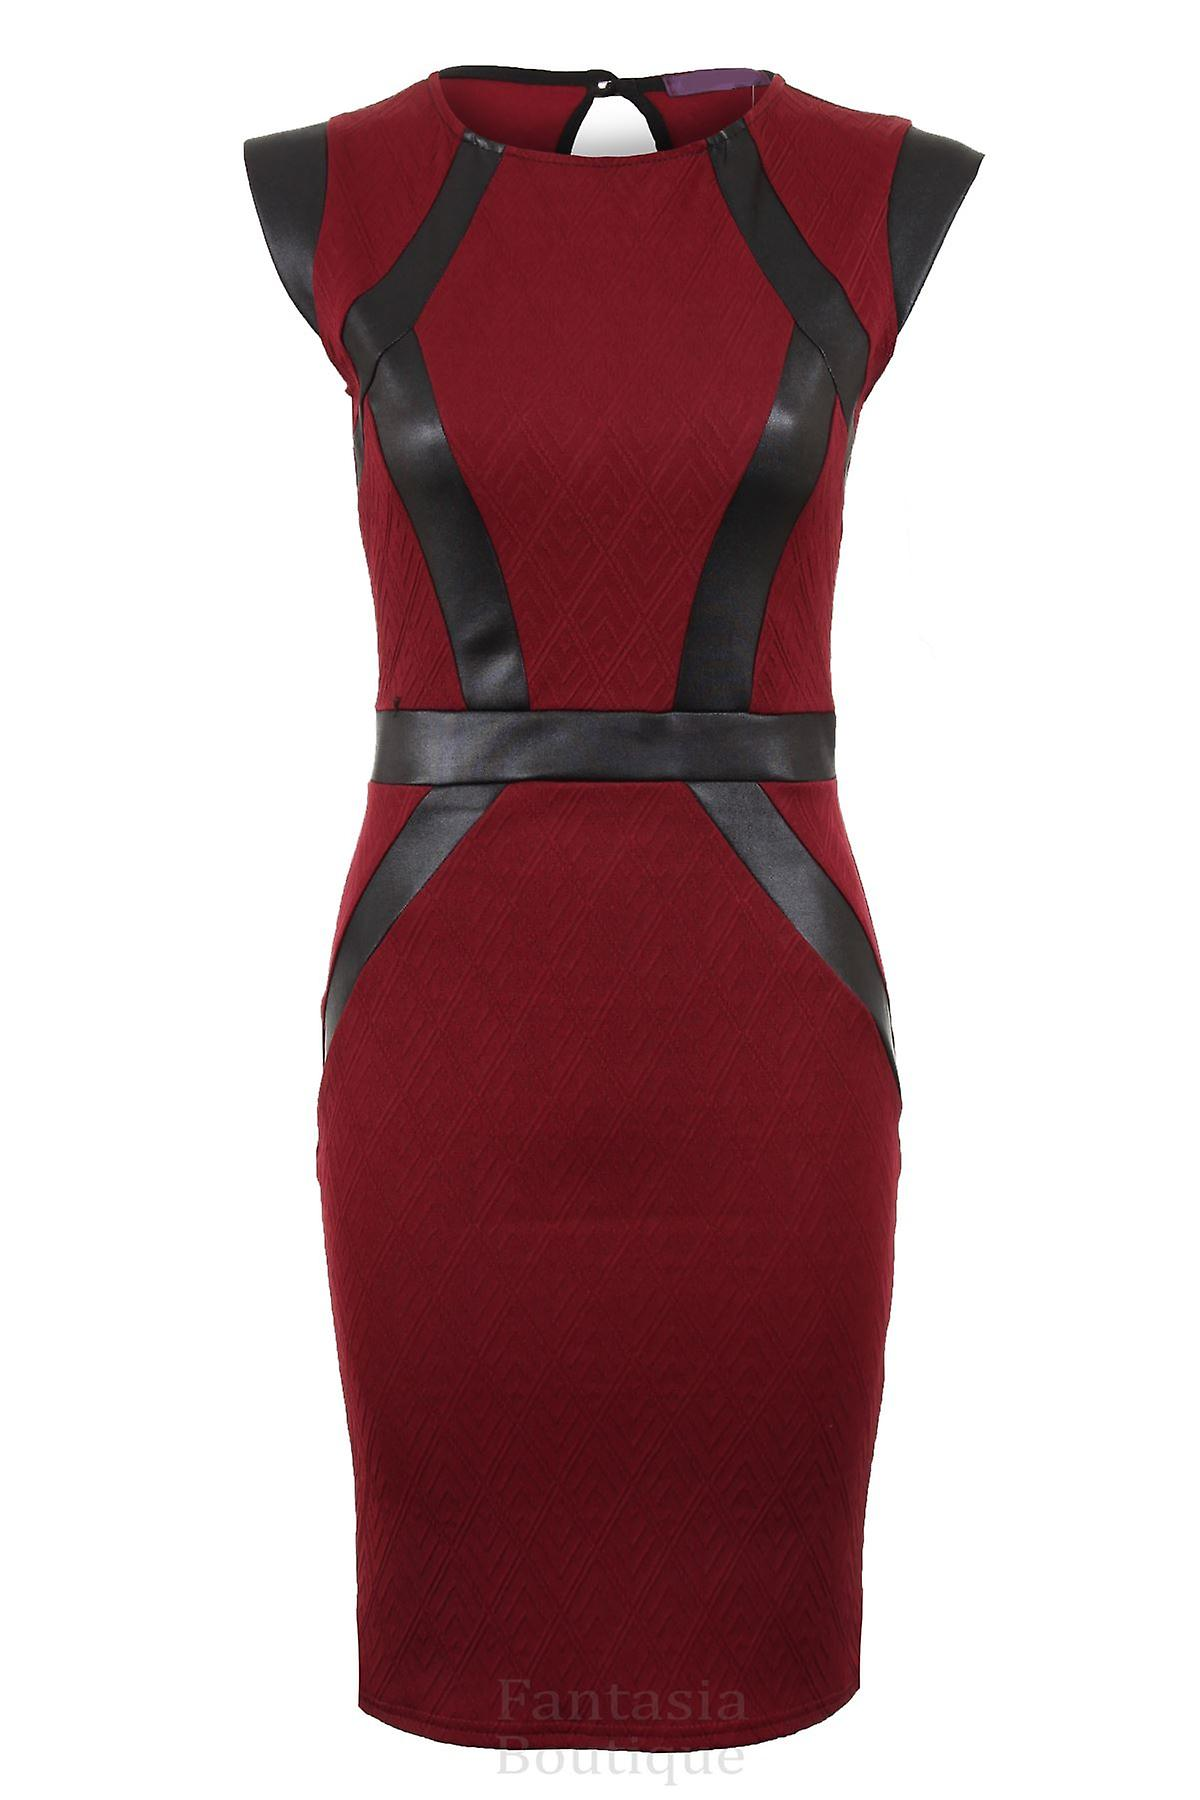 Ladies Quilted Textured PVC Strip Panel Slim Stretch Bodycon Short Women's Dress